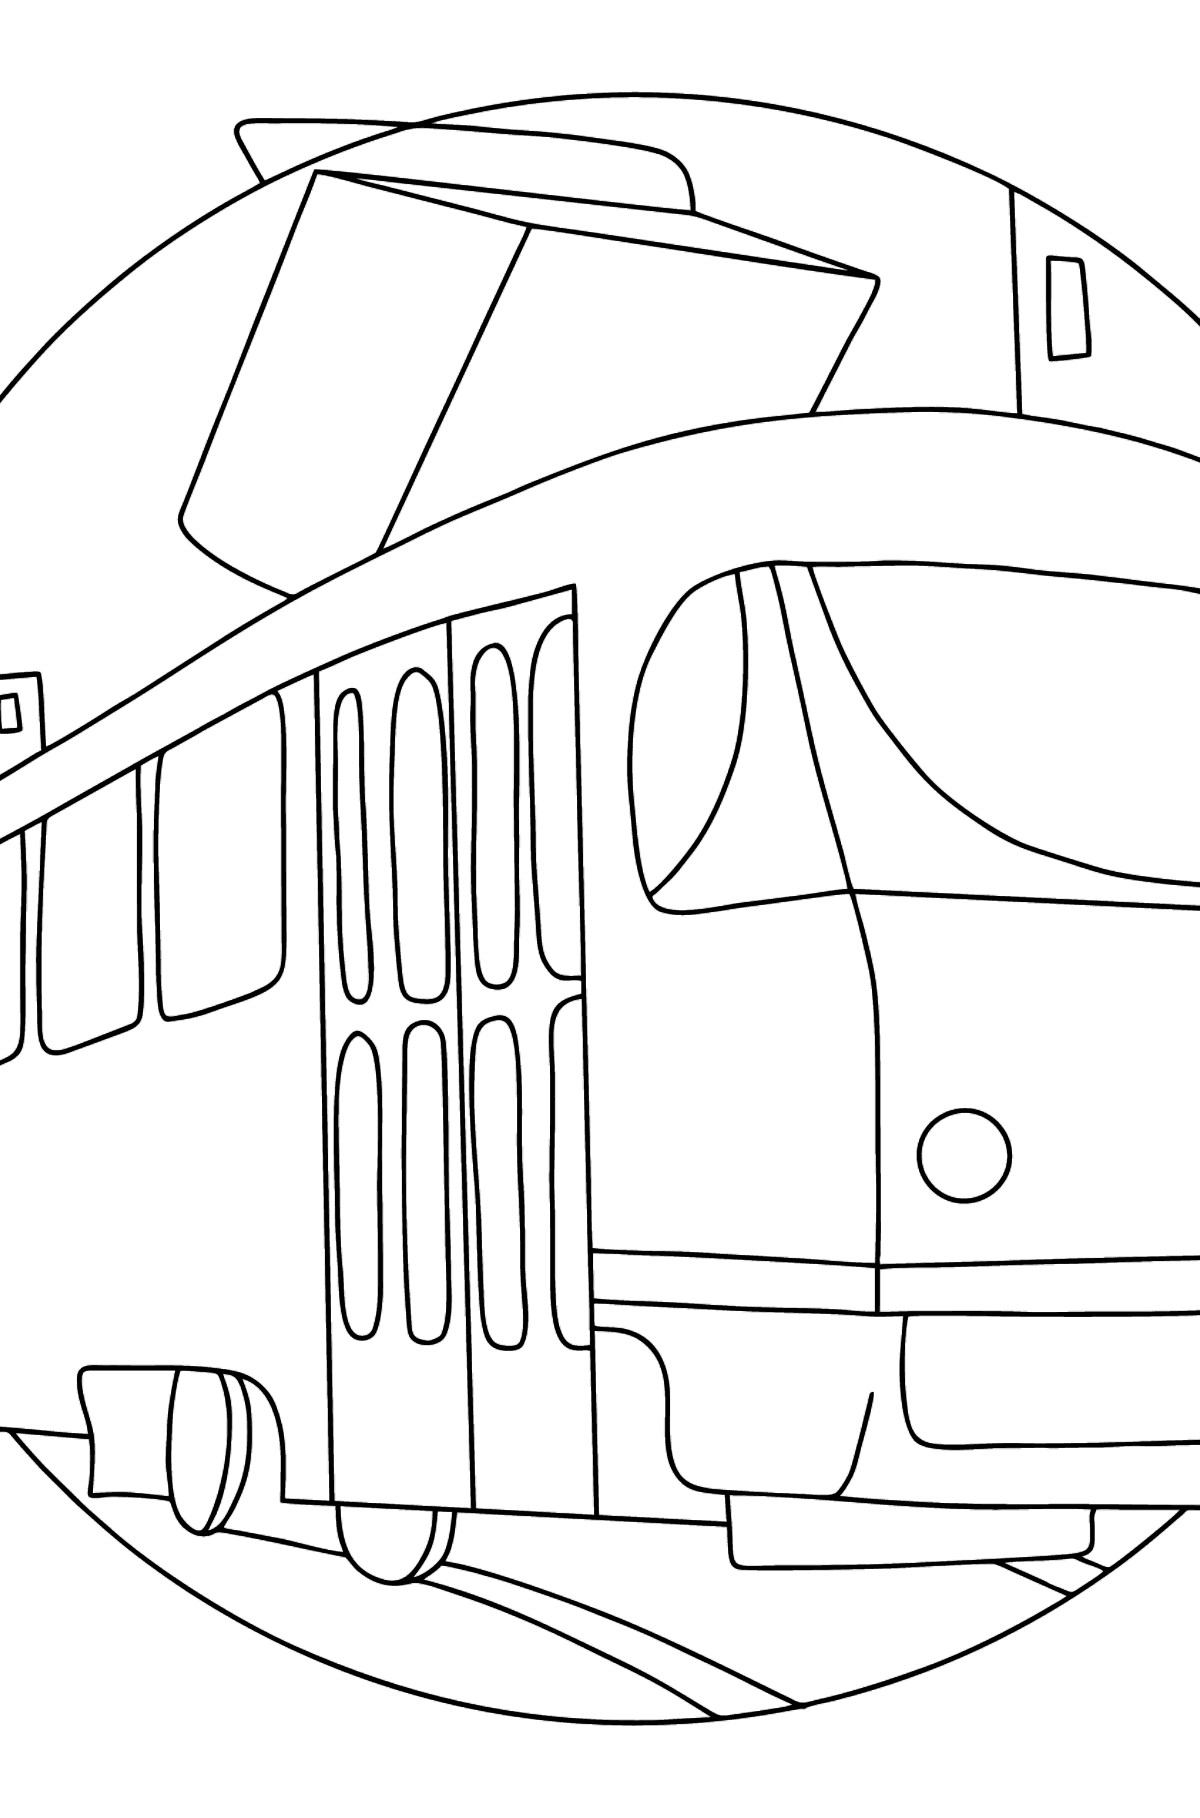 A Tram Coloring Page - Print fo free - Coloring Pages for Kids